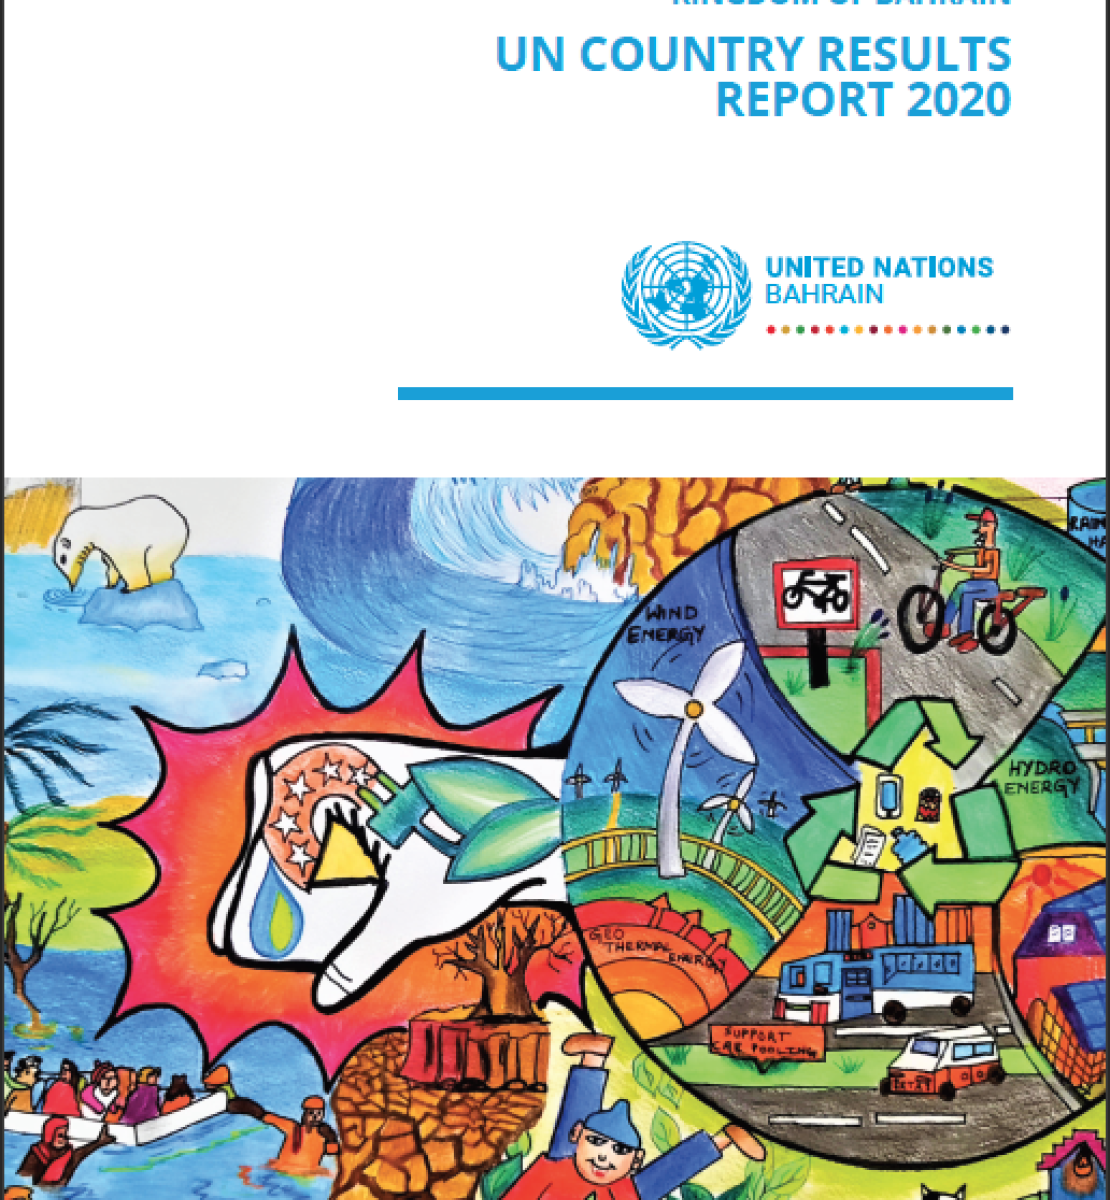 The cover shows the top half with the title and UNCT logo above a colouful animated drawing showing people living their daily life.